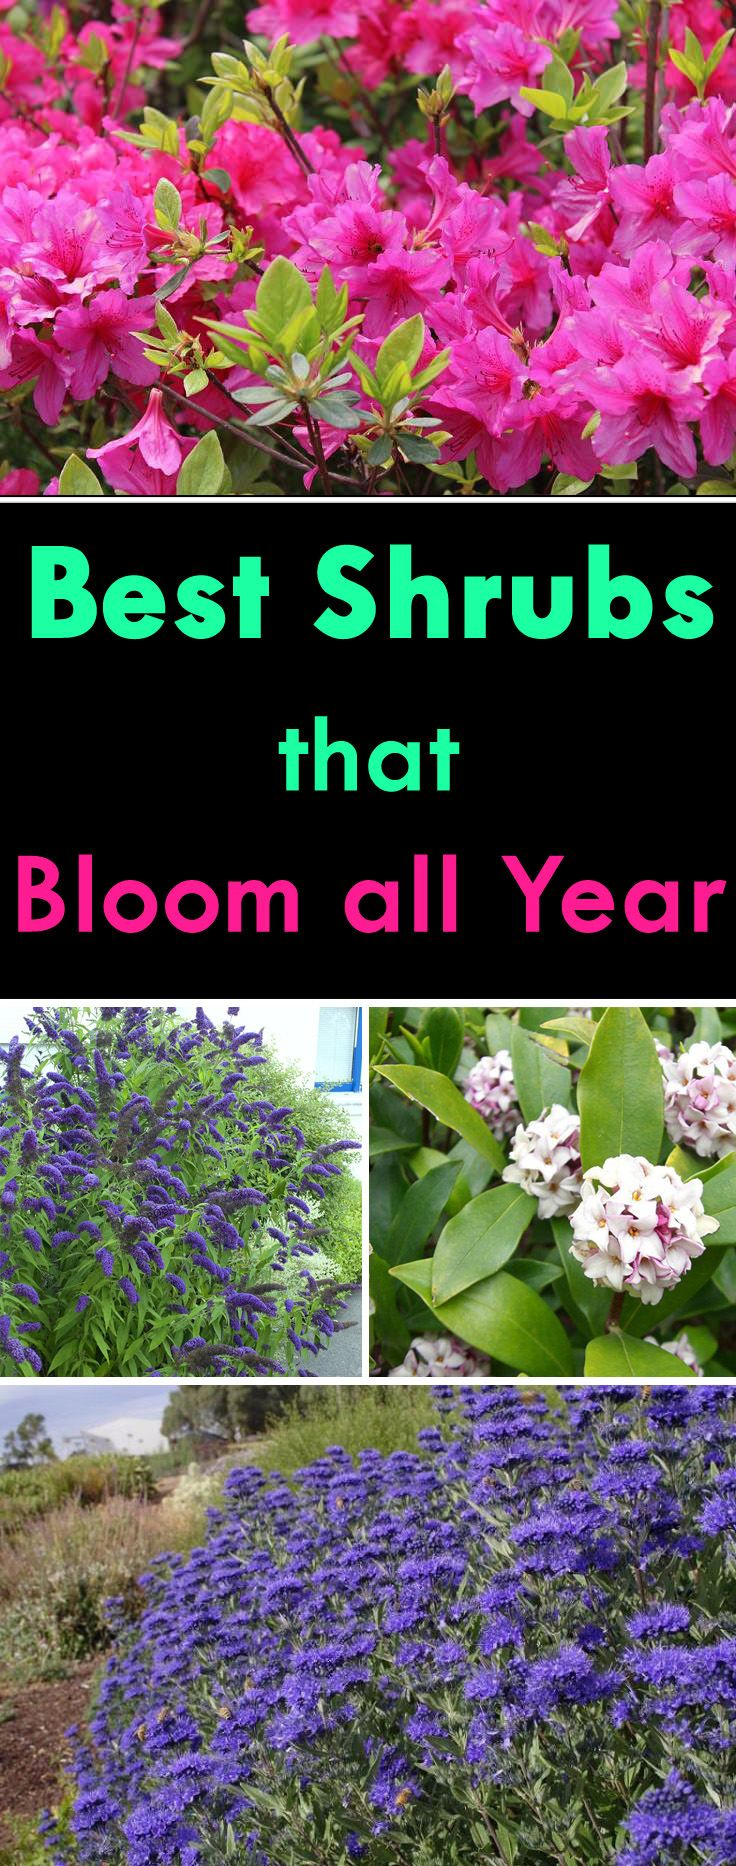 Best Shrubs that Bloom All Year. 201 best Plants images on Pinterest   Flower gardening  Flowers